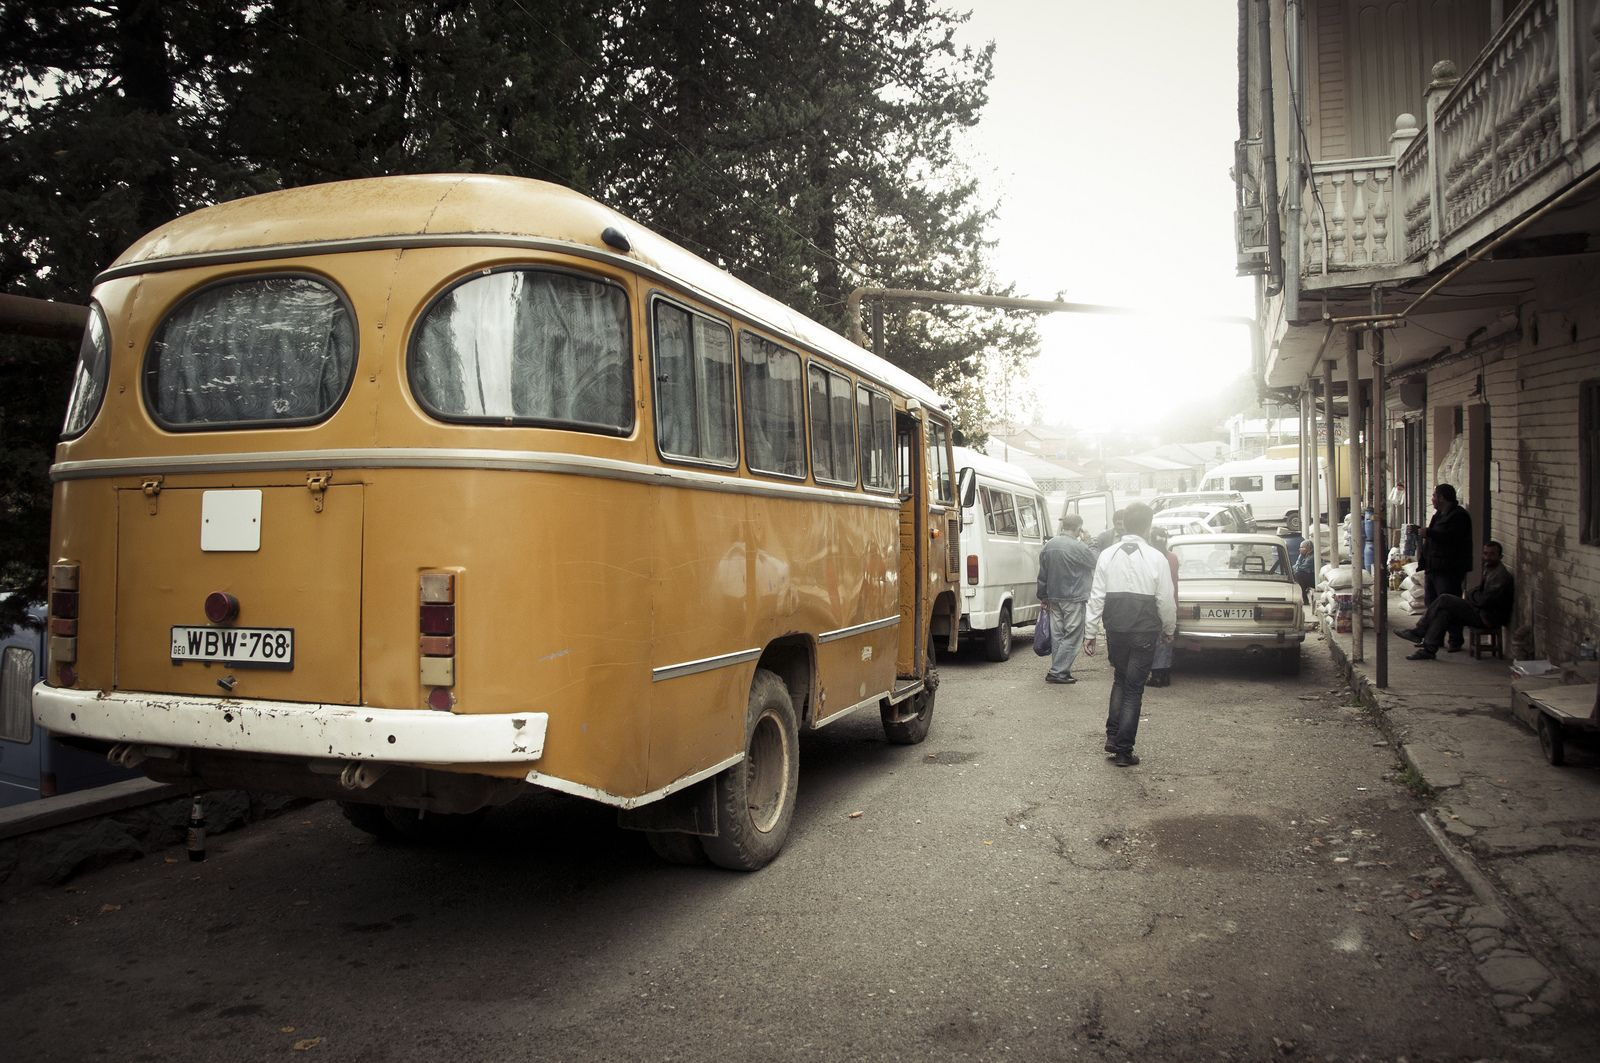 Streets of Kutaisi | by Brave Lemming